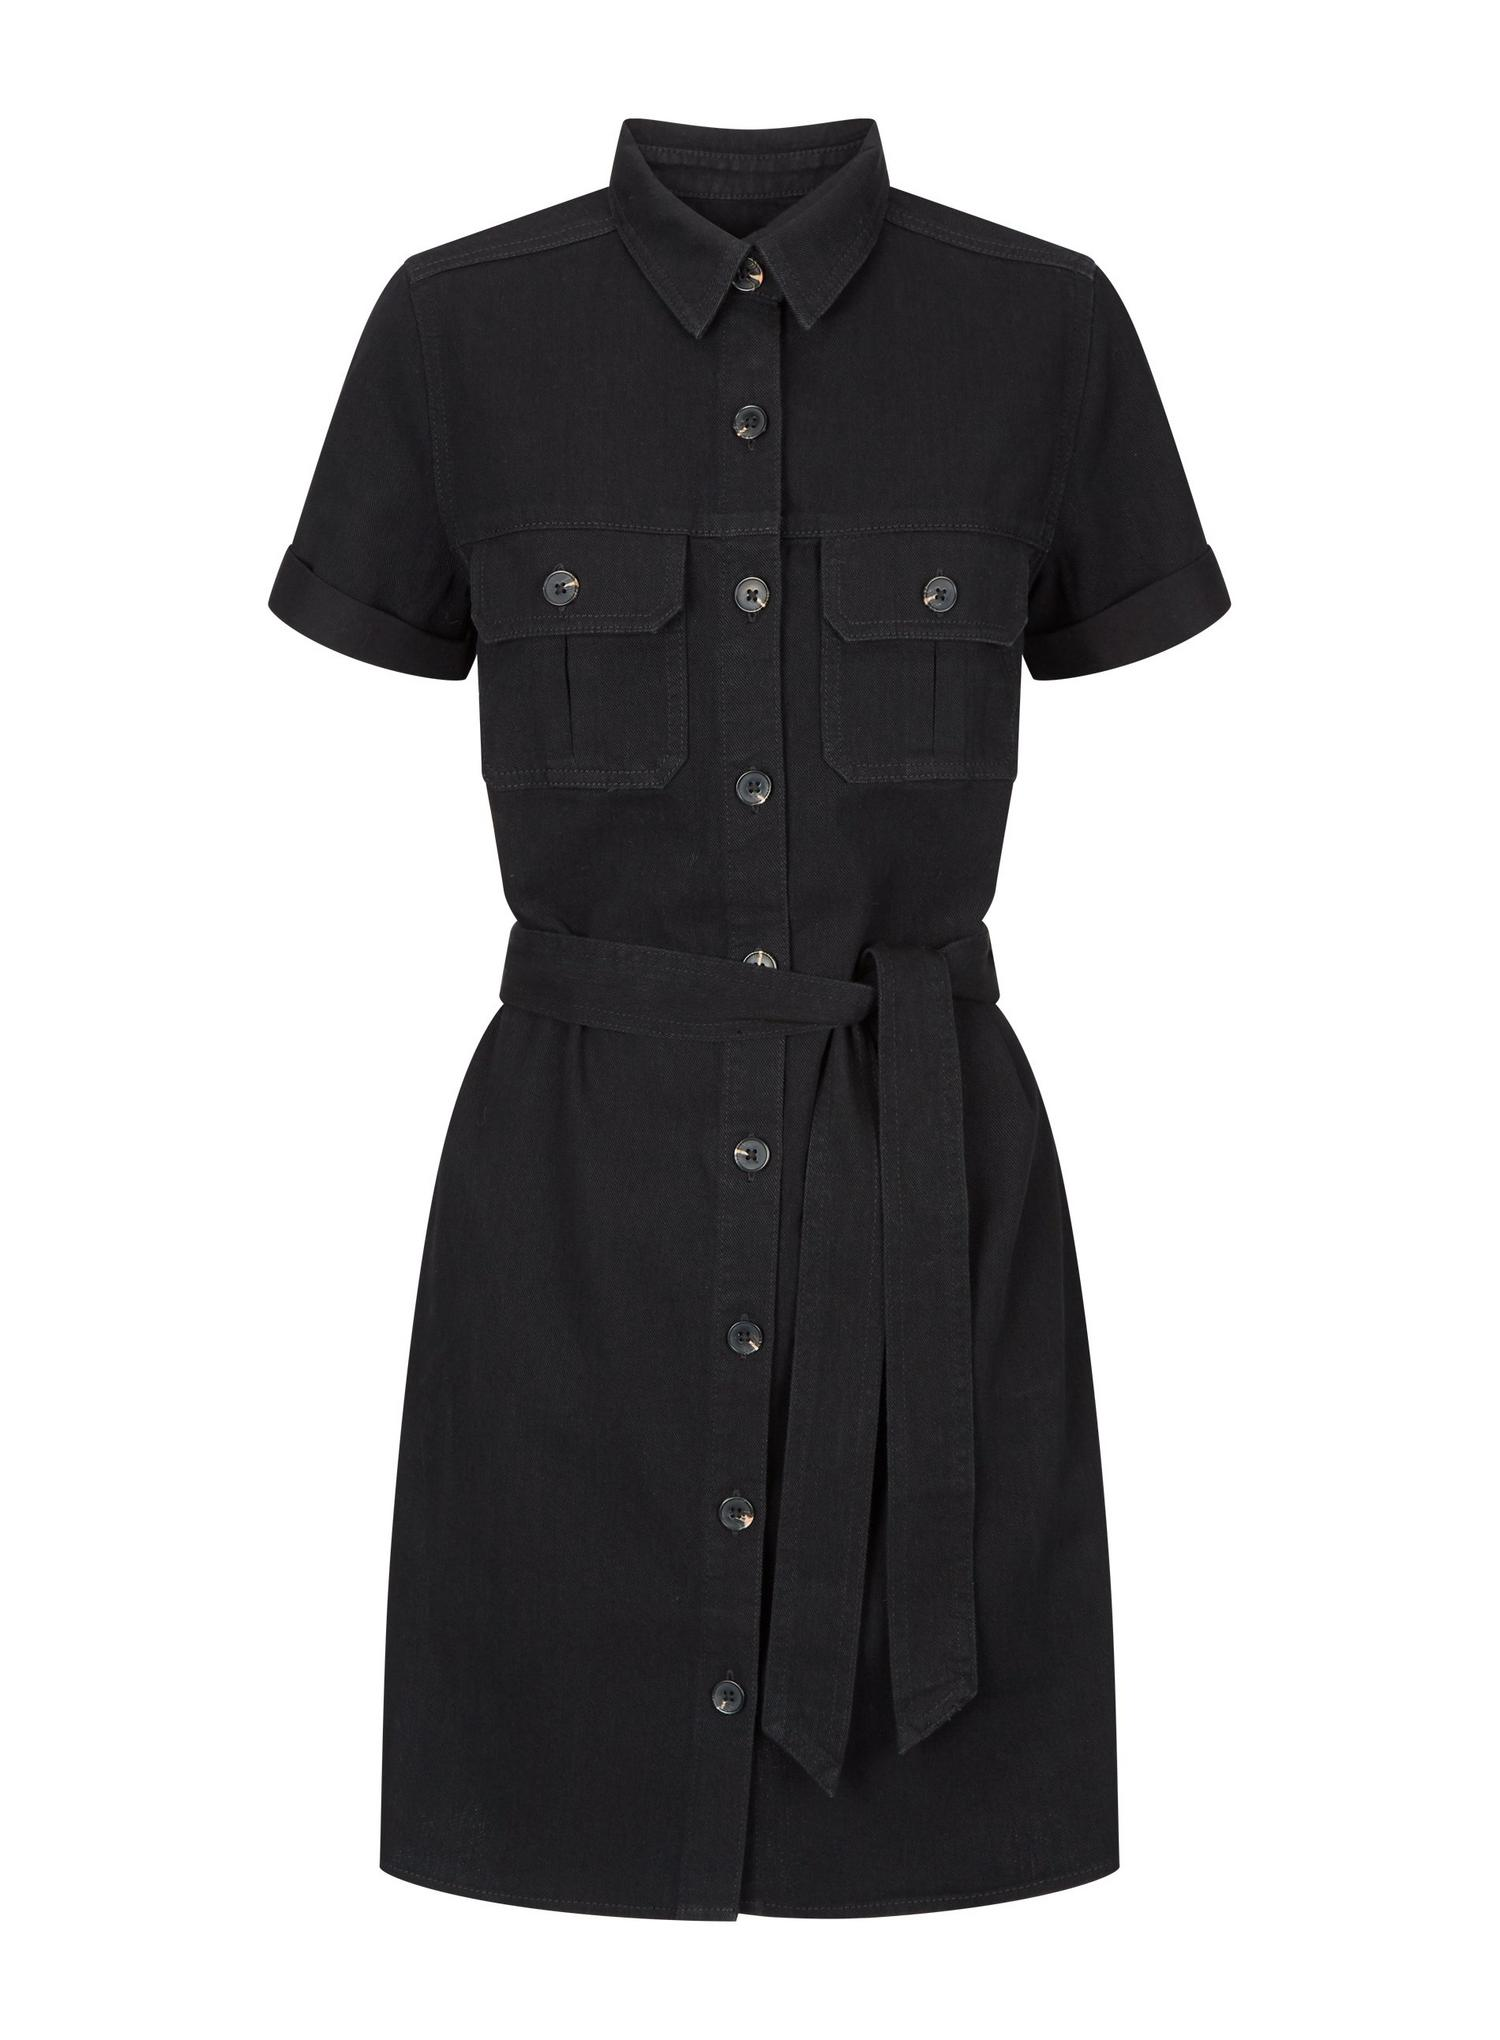 105 Black Denim Shirt Dress image number 2